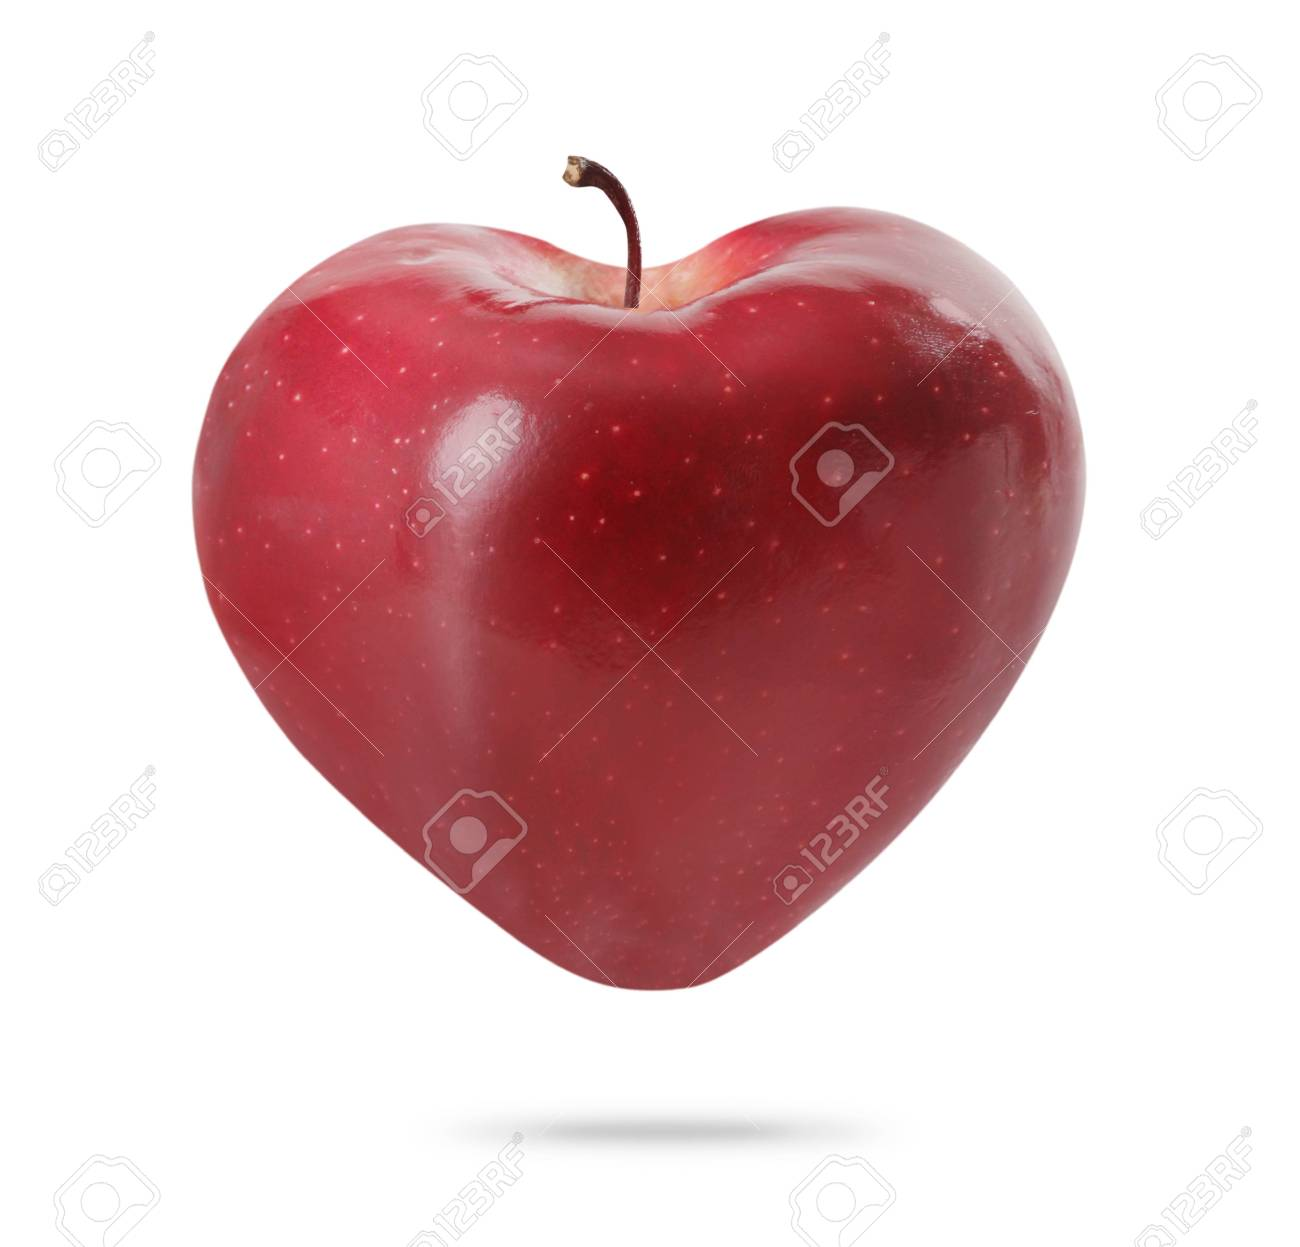 Heart  apple isolated on white background Stock Photo - 15304592